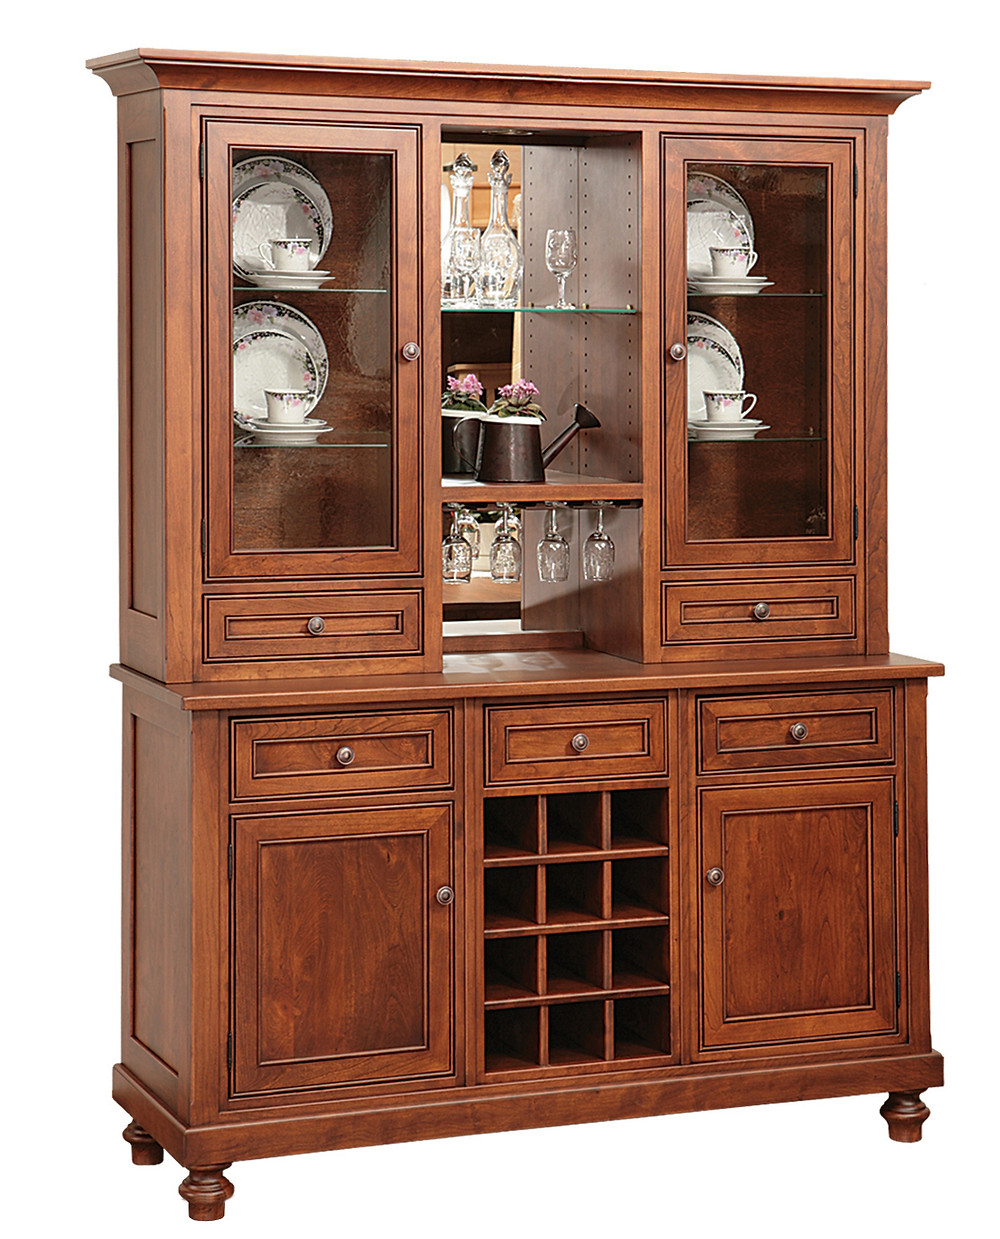 Rustic cherry china cabinet - Mayflower collection with wine rack